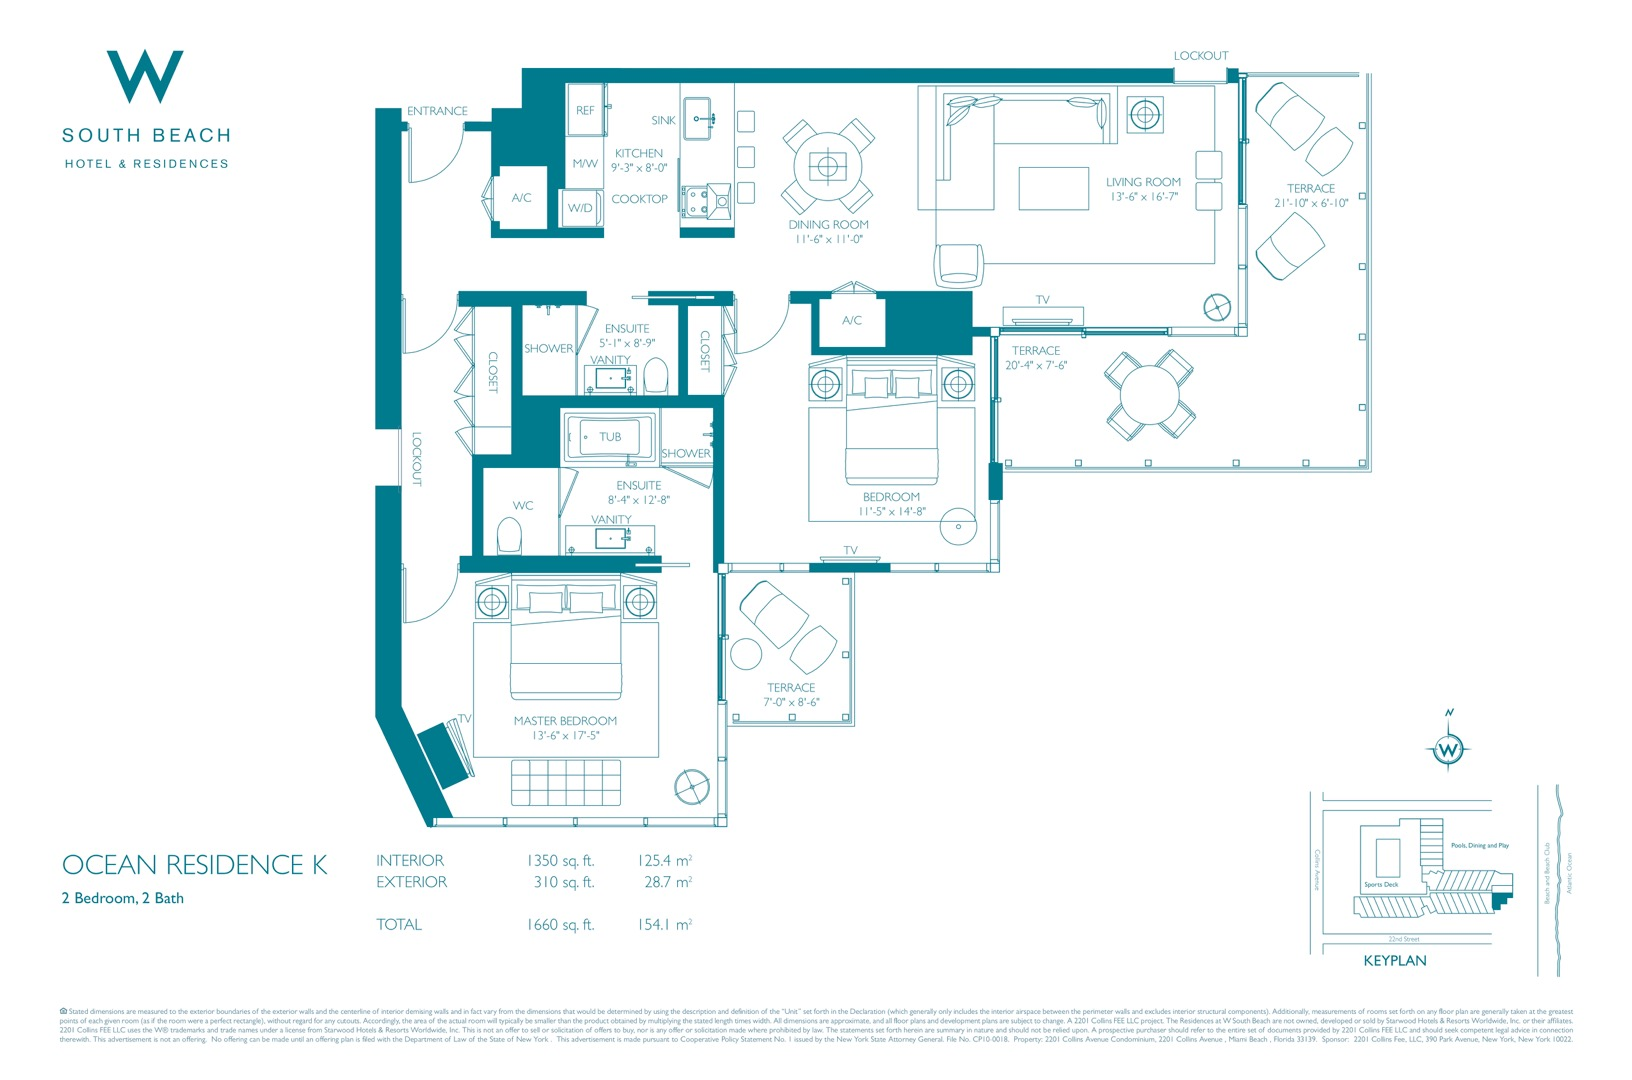 Floor plan image W South Beach K - 2/2  - 1660 sqft image